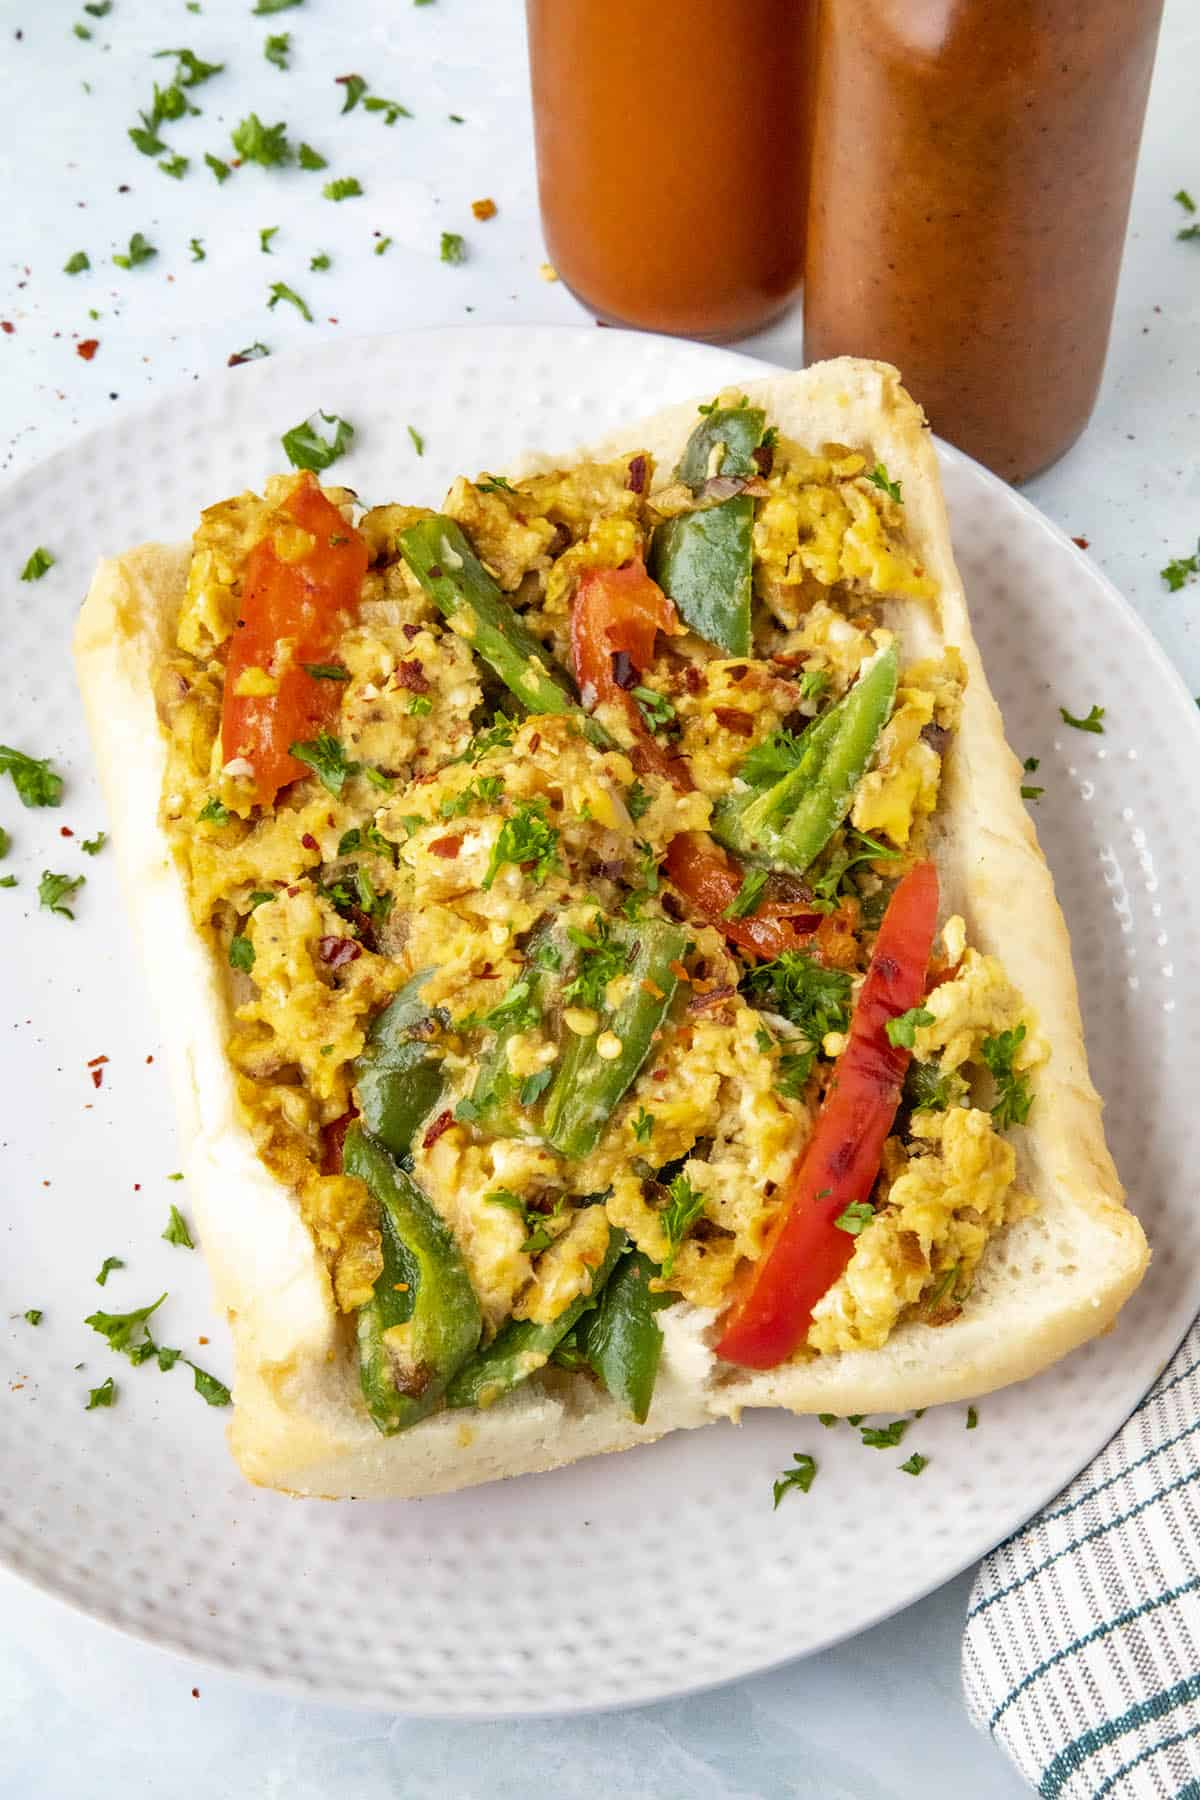 Pepper and Egg Sandwich with lots of peppers